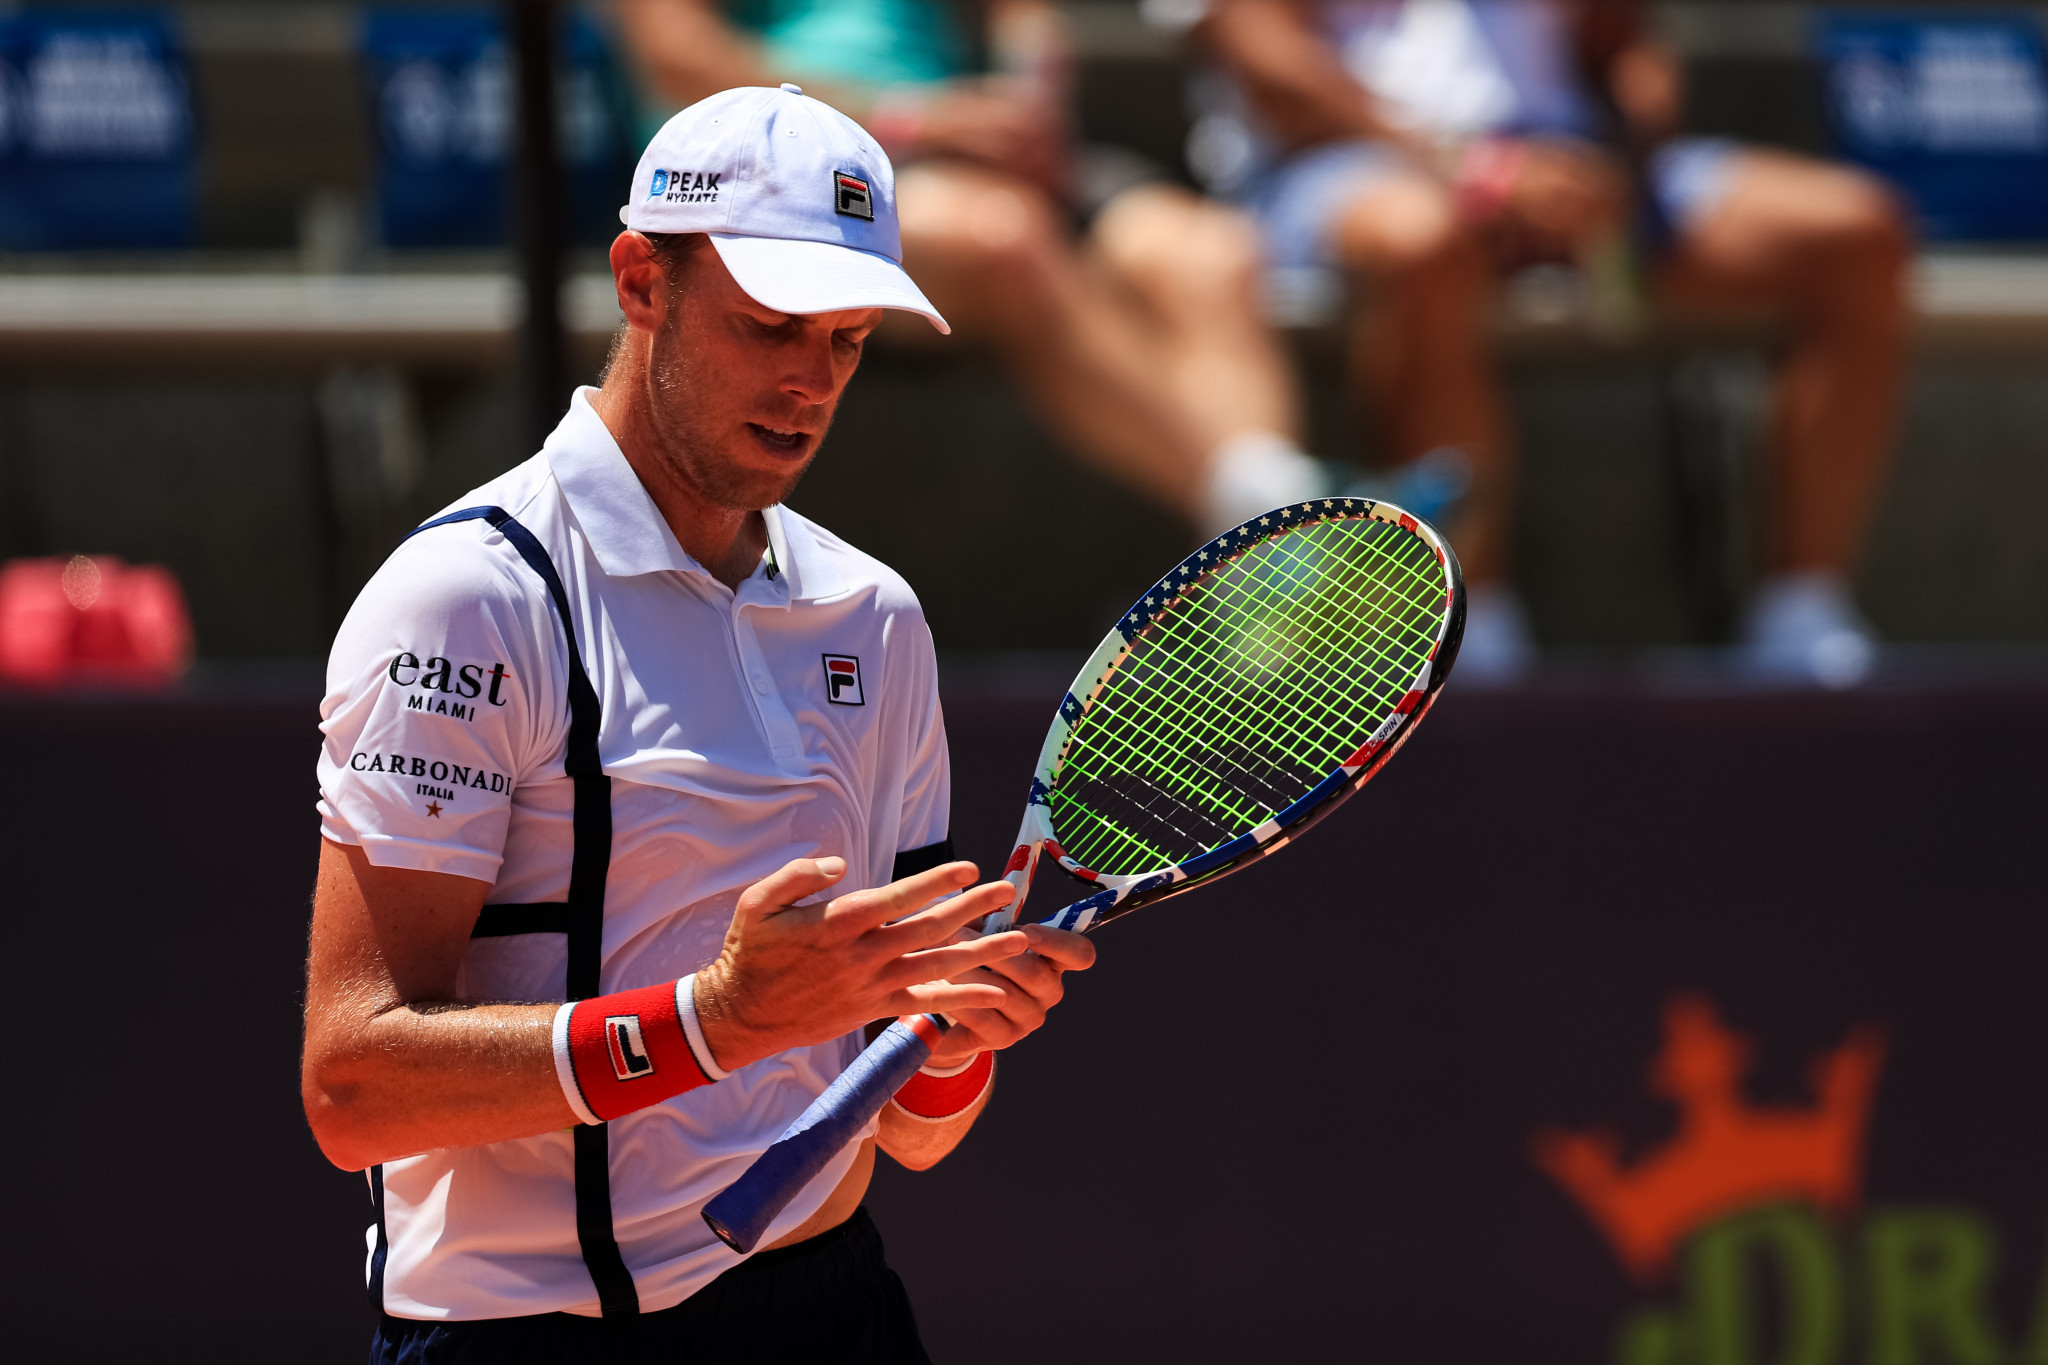 Sam Querrey was due to play in an ATP 500 event in St Petersburg before contracting coronavirus ©Getty Images